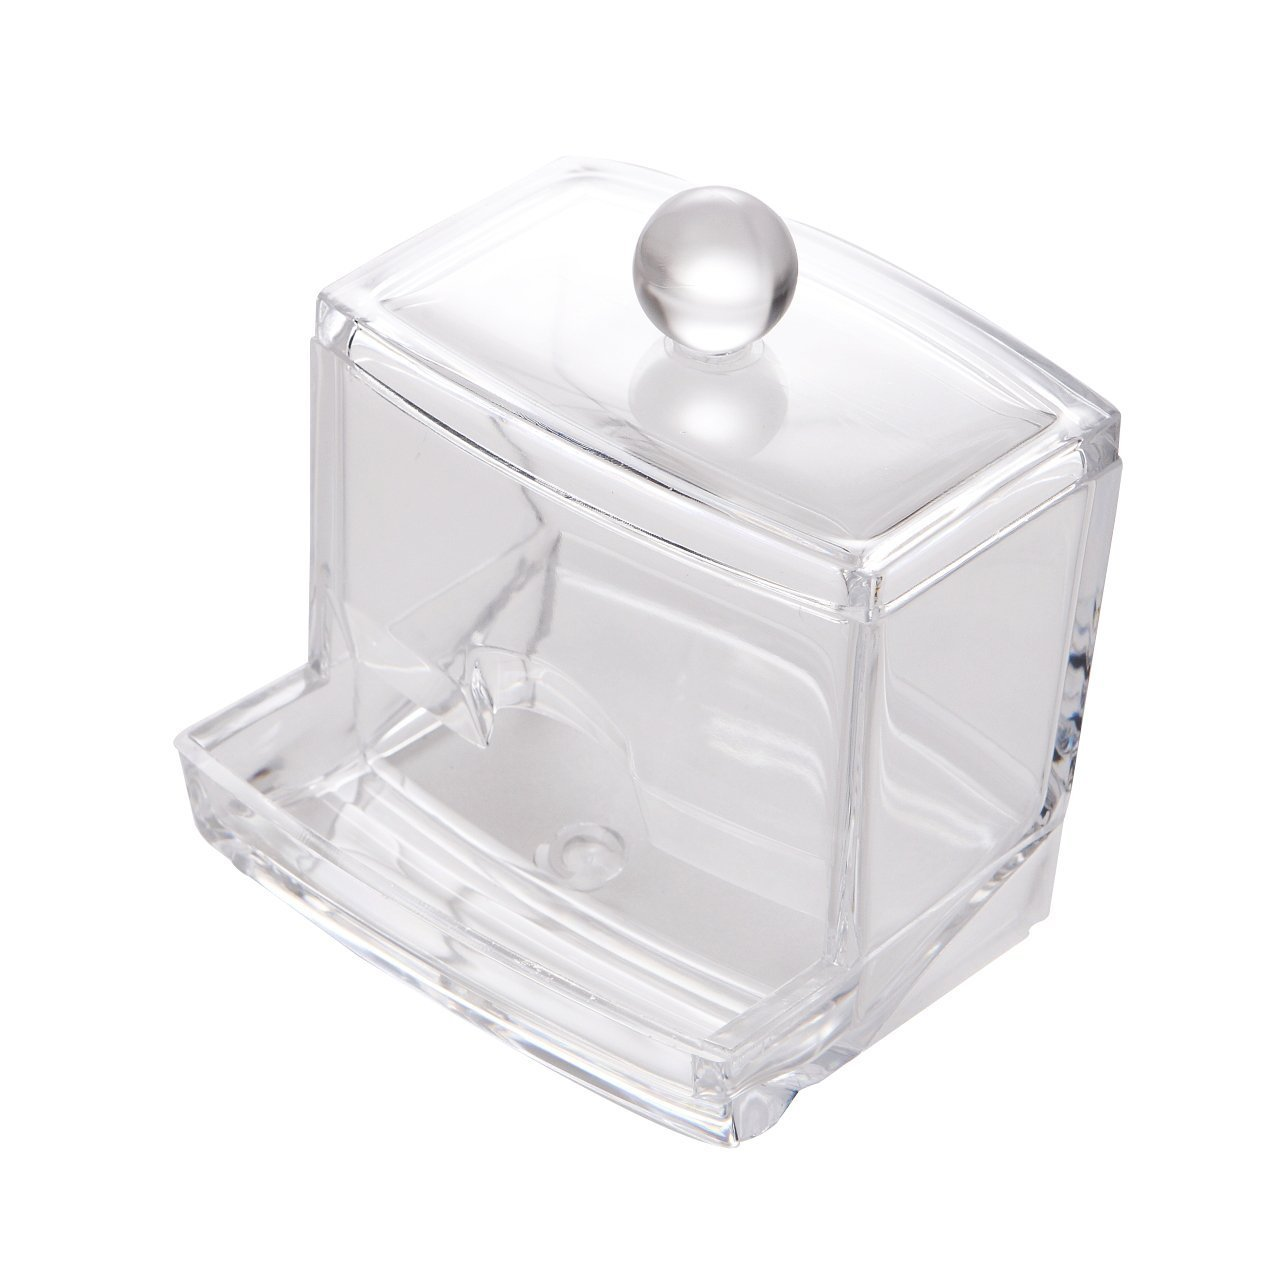 Clear Acrylic Cotton Wool Bud Dispenser Organiser Container Display 2130:  Amazon.co.uk: Beauty